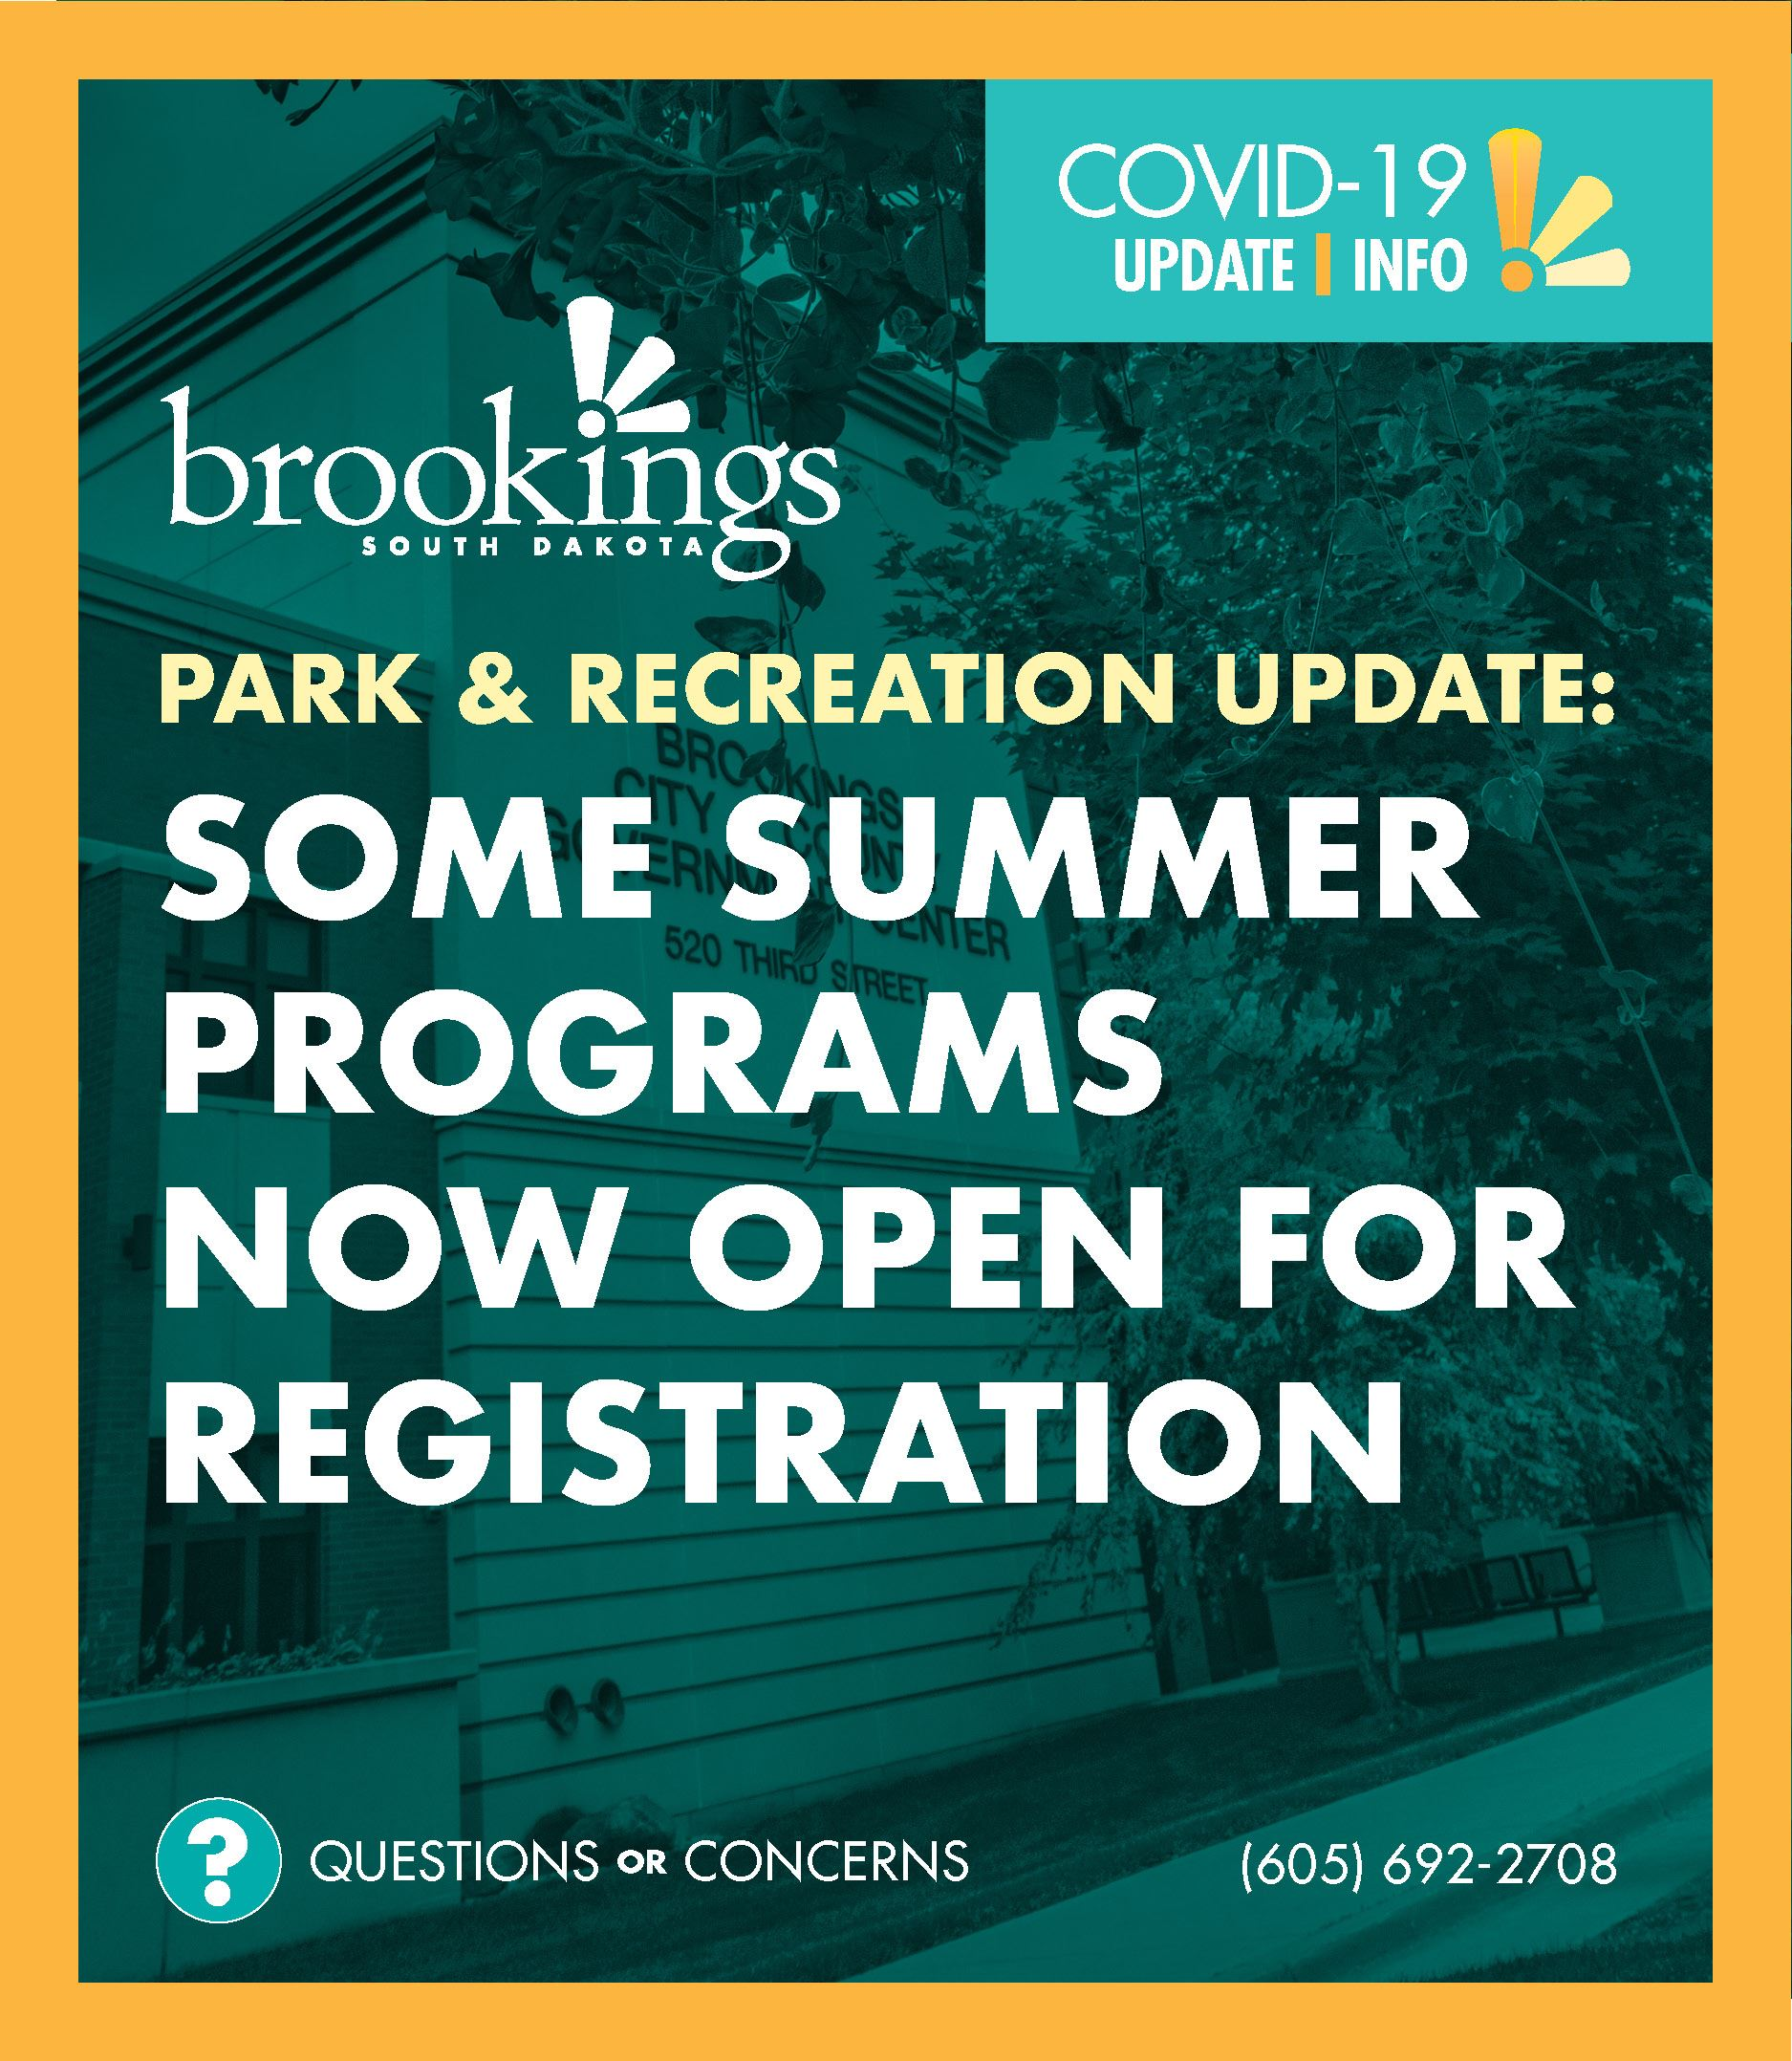 Park and Recreation Department to Open Registration for Some Programs